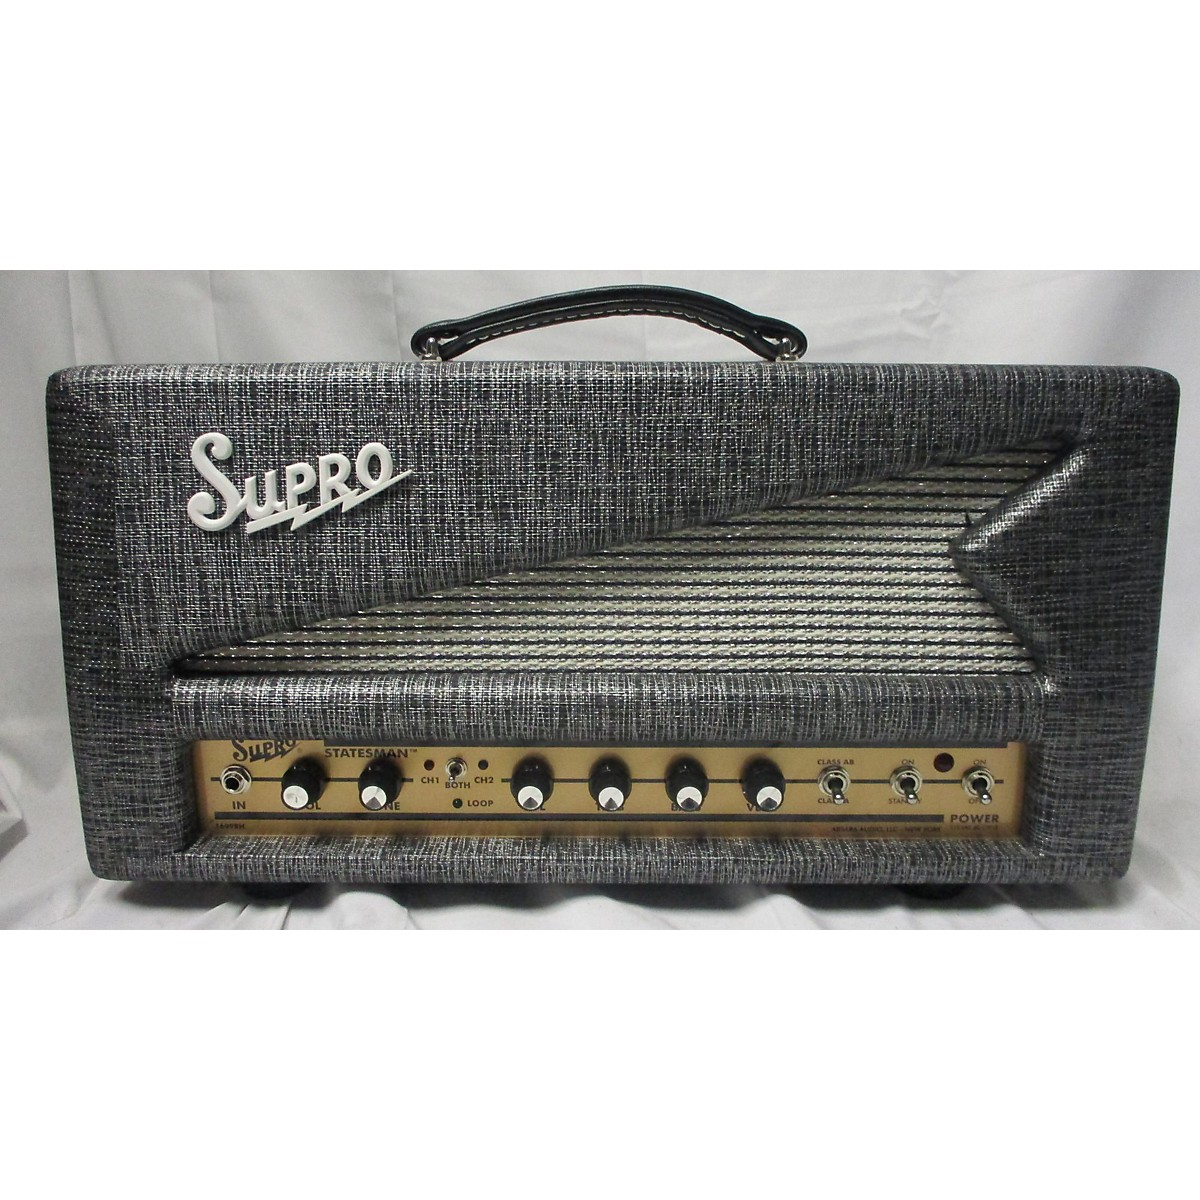 Supro 1699R Statesman Tube Guitar Amp Head